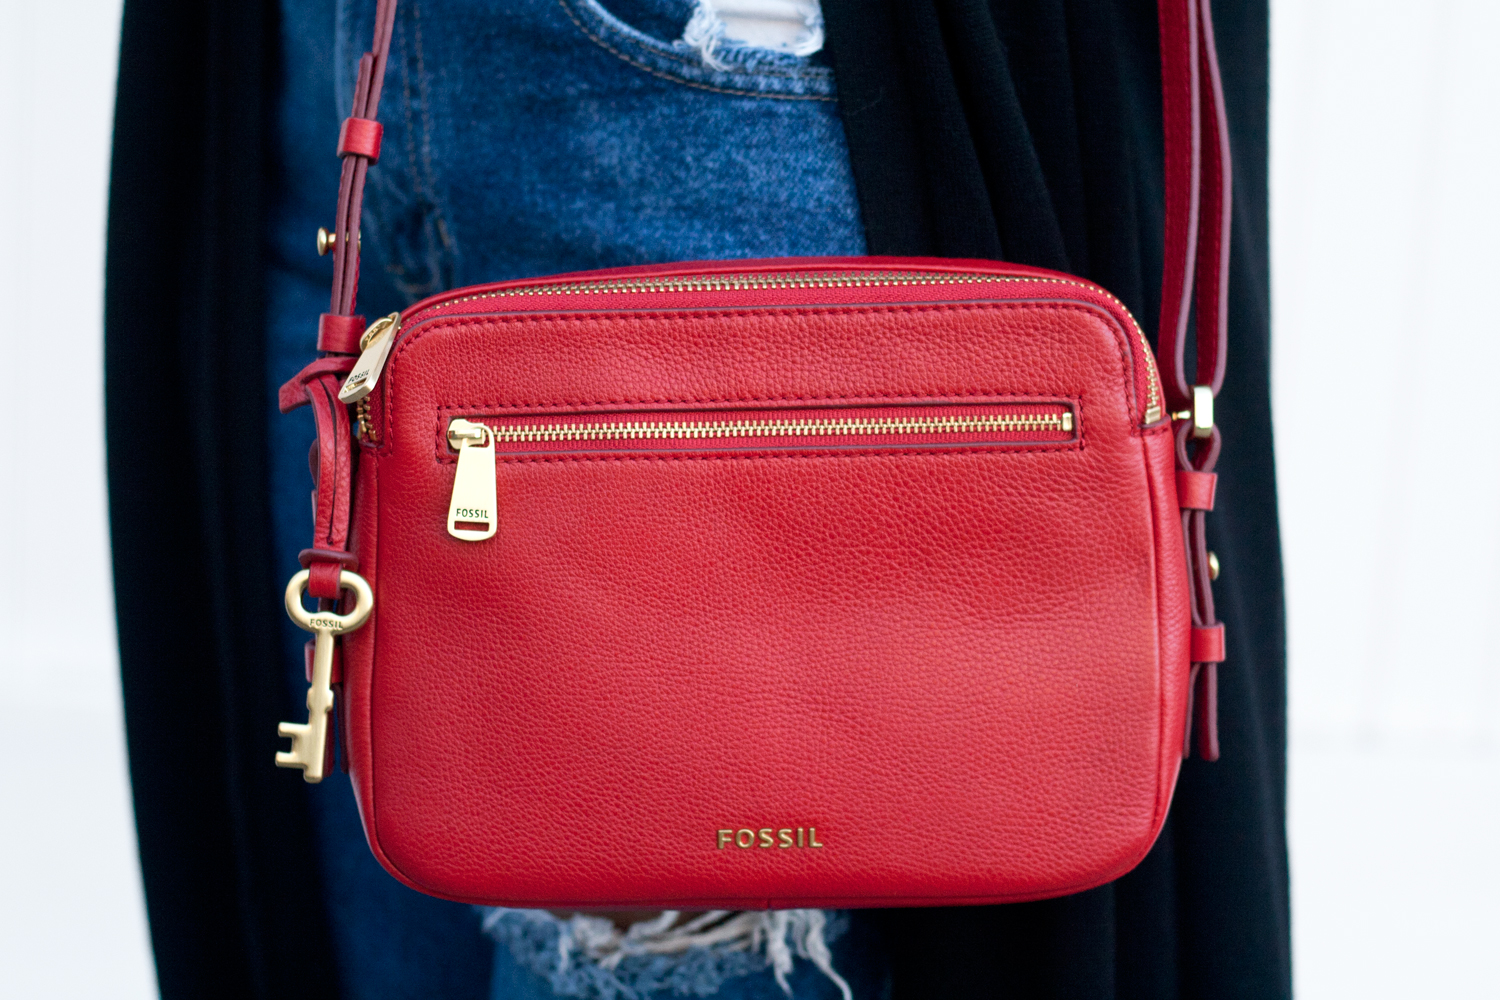 08holiday-red-fossil-leather-bag-style-fashion